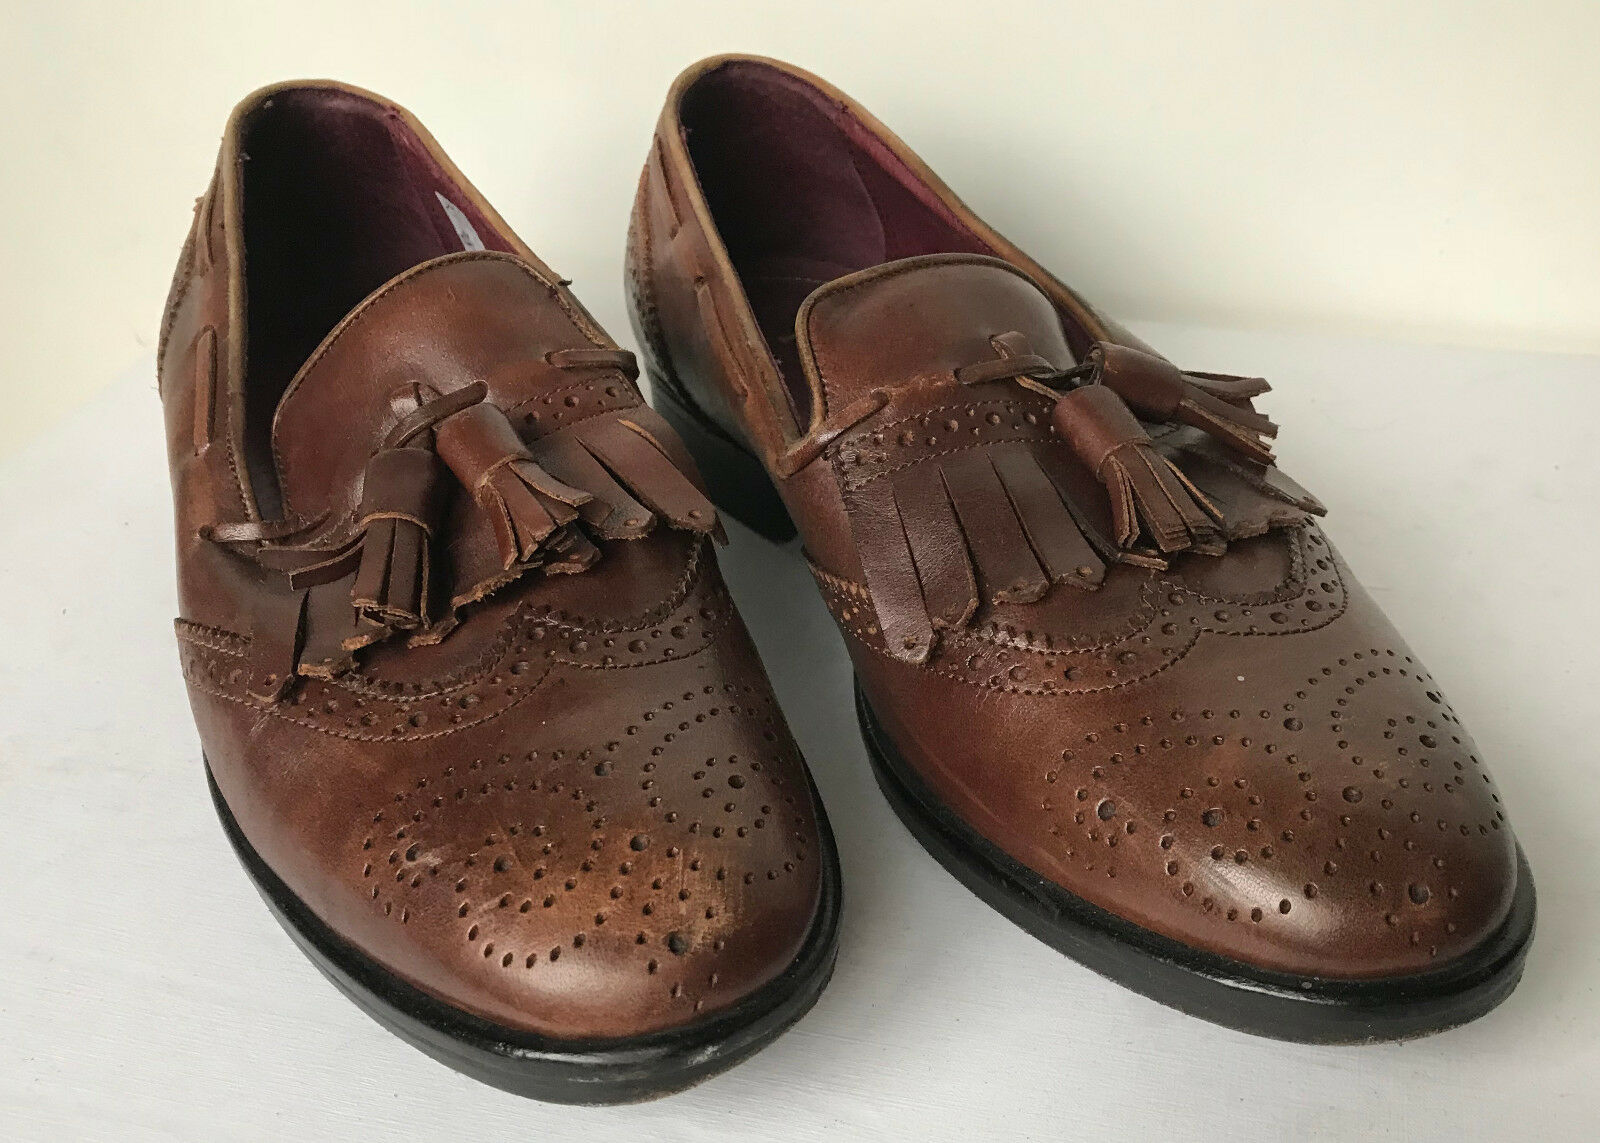 bce15cf51957 Real Tan Leather Brown shoes Tassel Loafers 100% Poste nbzhsv4043 ...